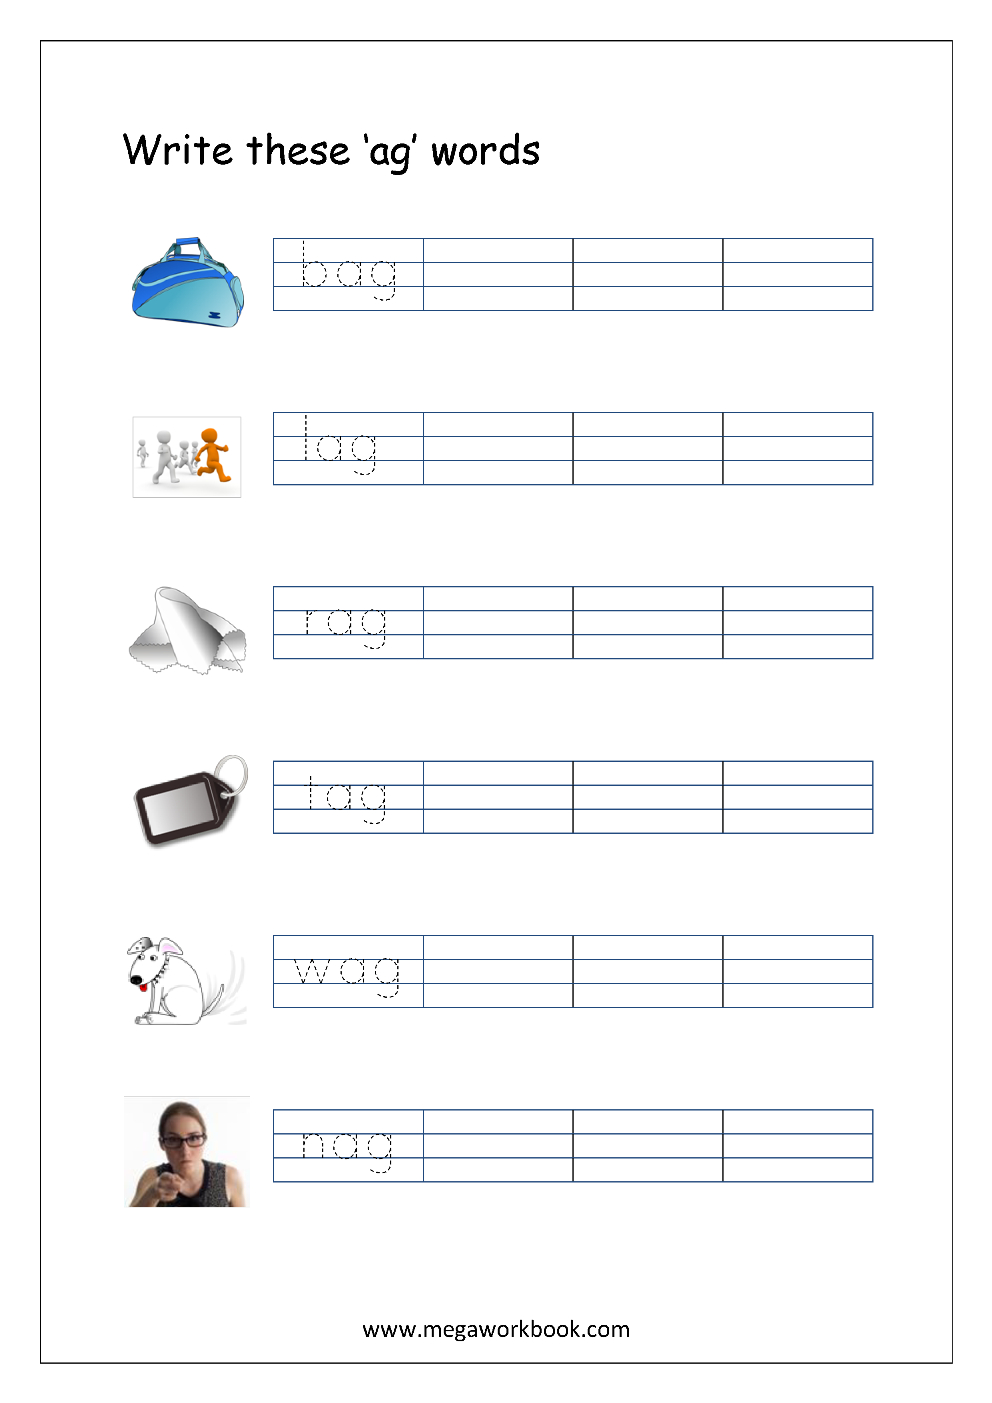 Free Printable Cvc Words Writing Worksheets For Kids - Three throughout Tracing 3 Letter Words Worksheets